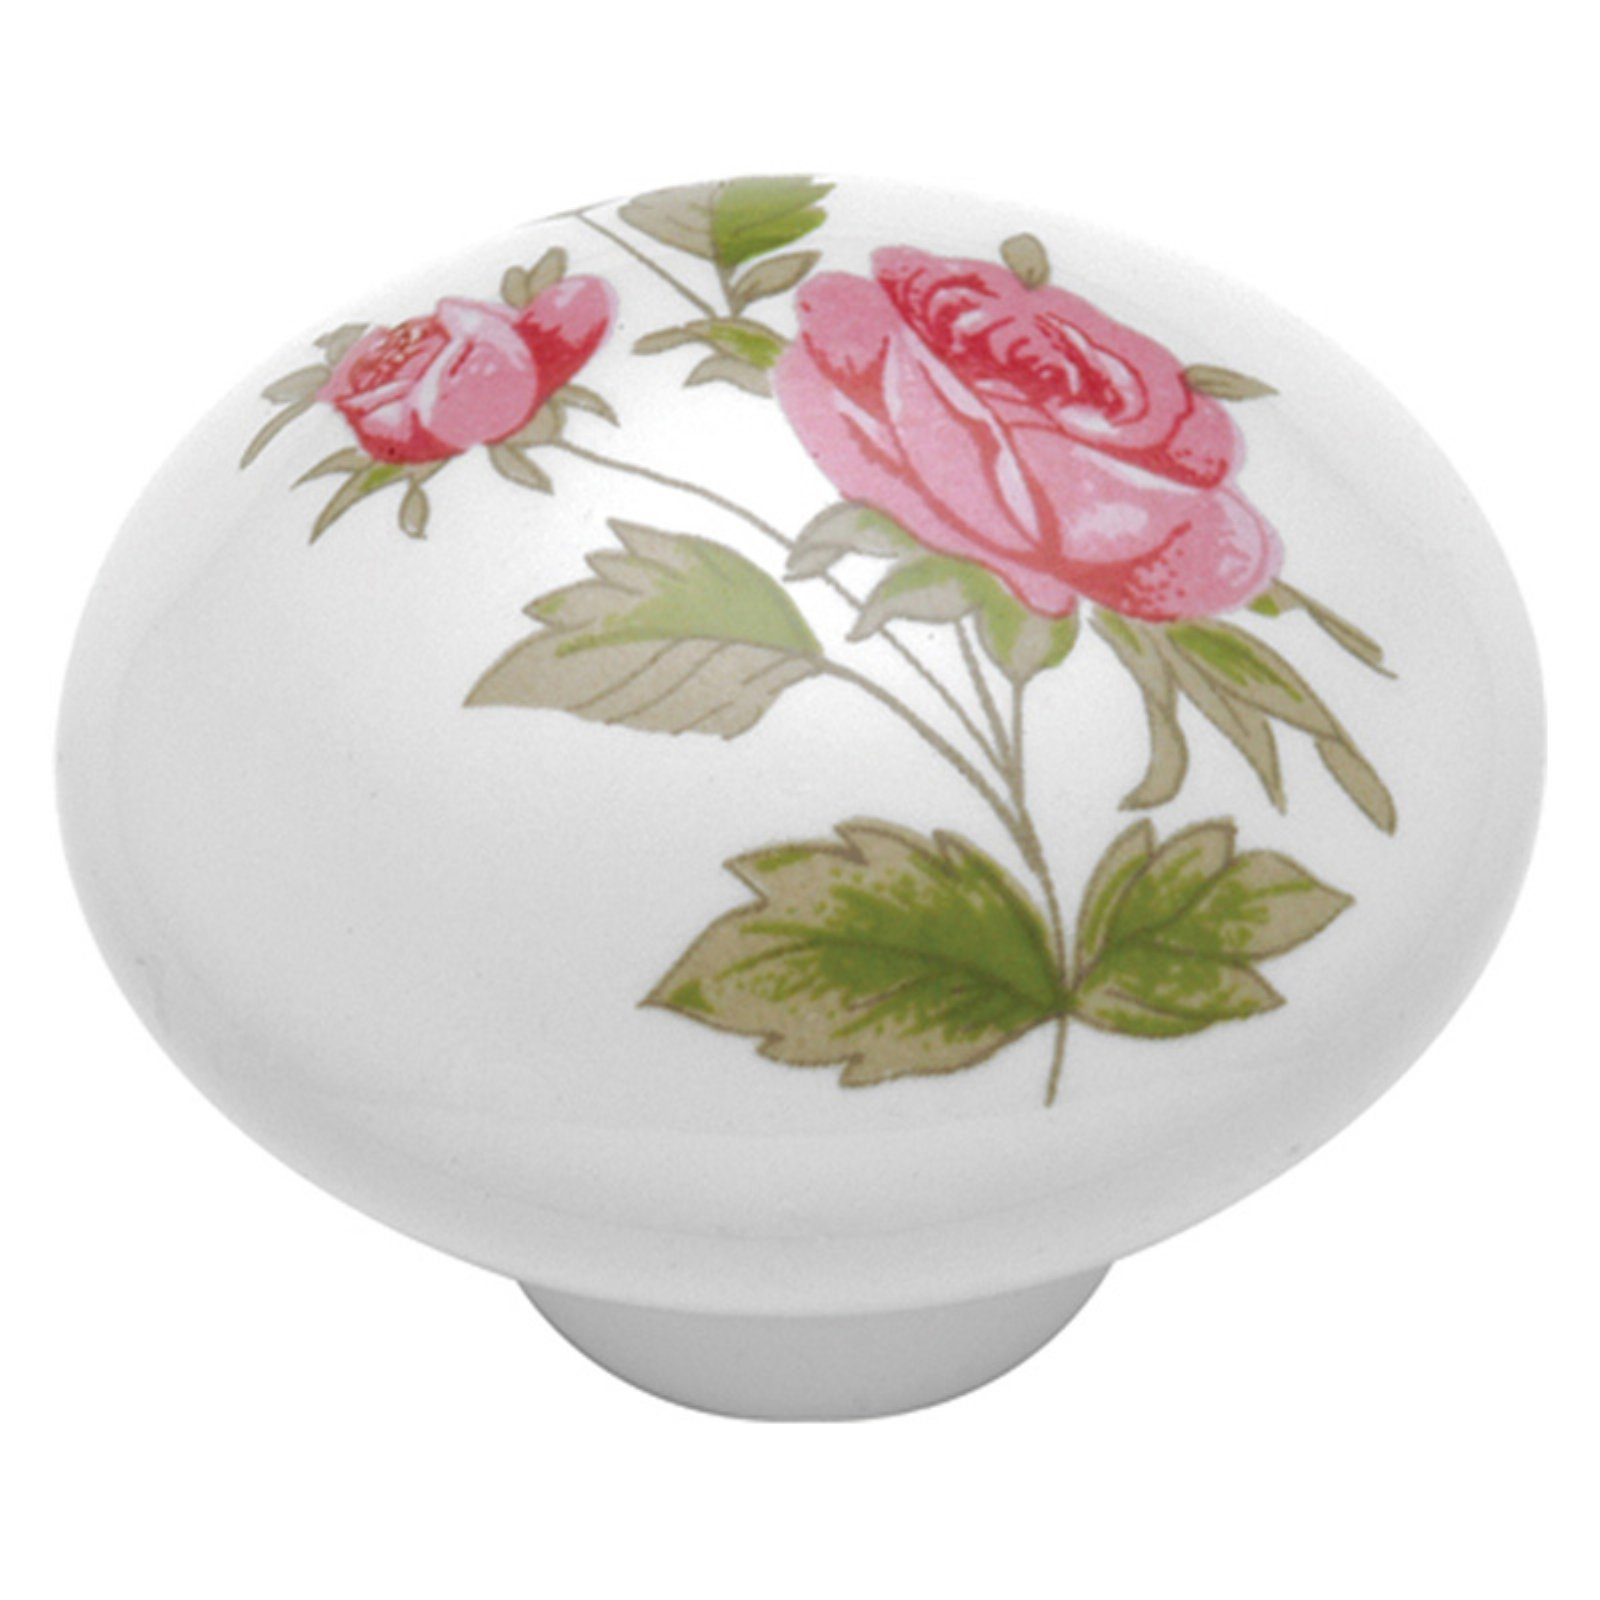 Hickory Hardware English Cozy Pink Rose Cabinet Knob